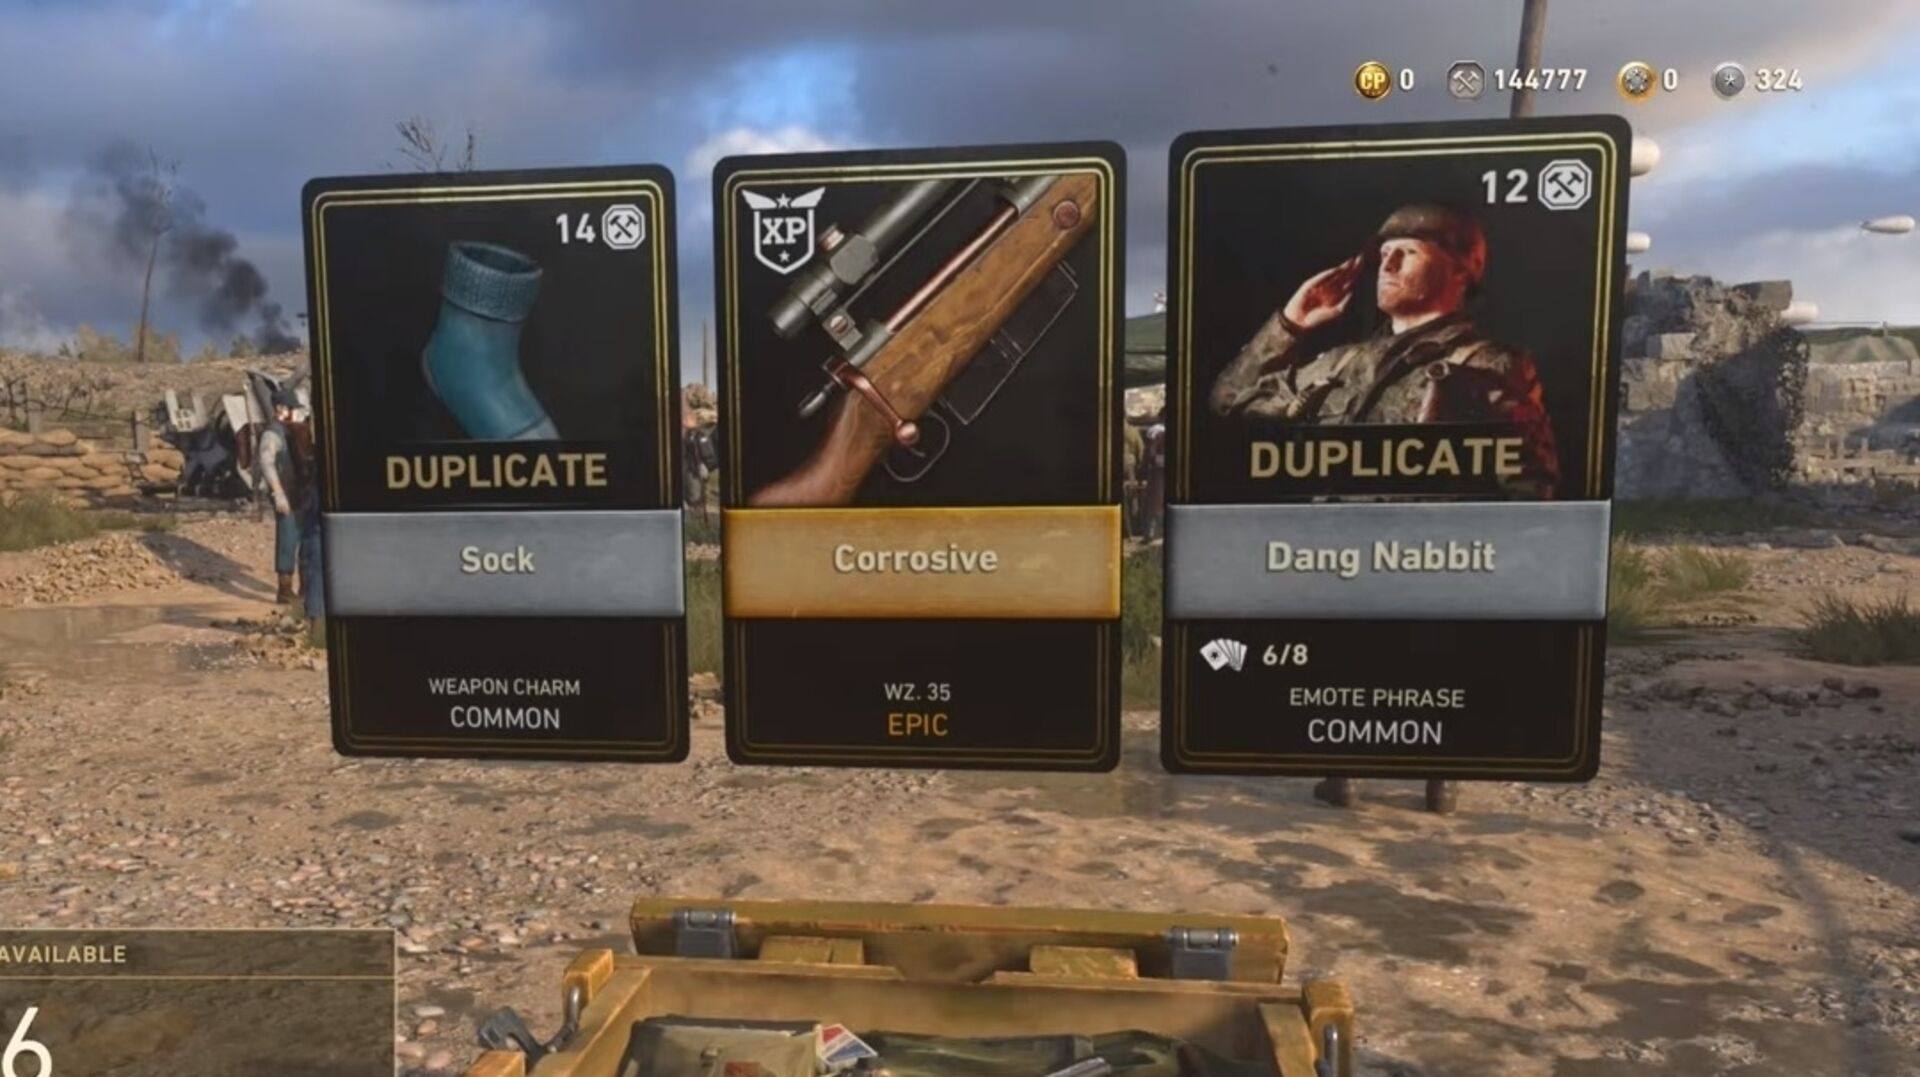 Don't forget Call of Duty: WW2, which is currently having a loot box